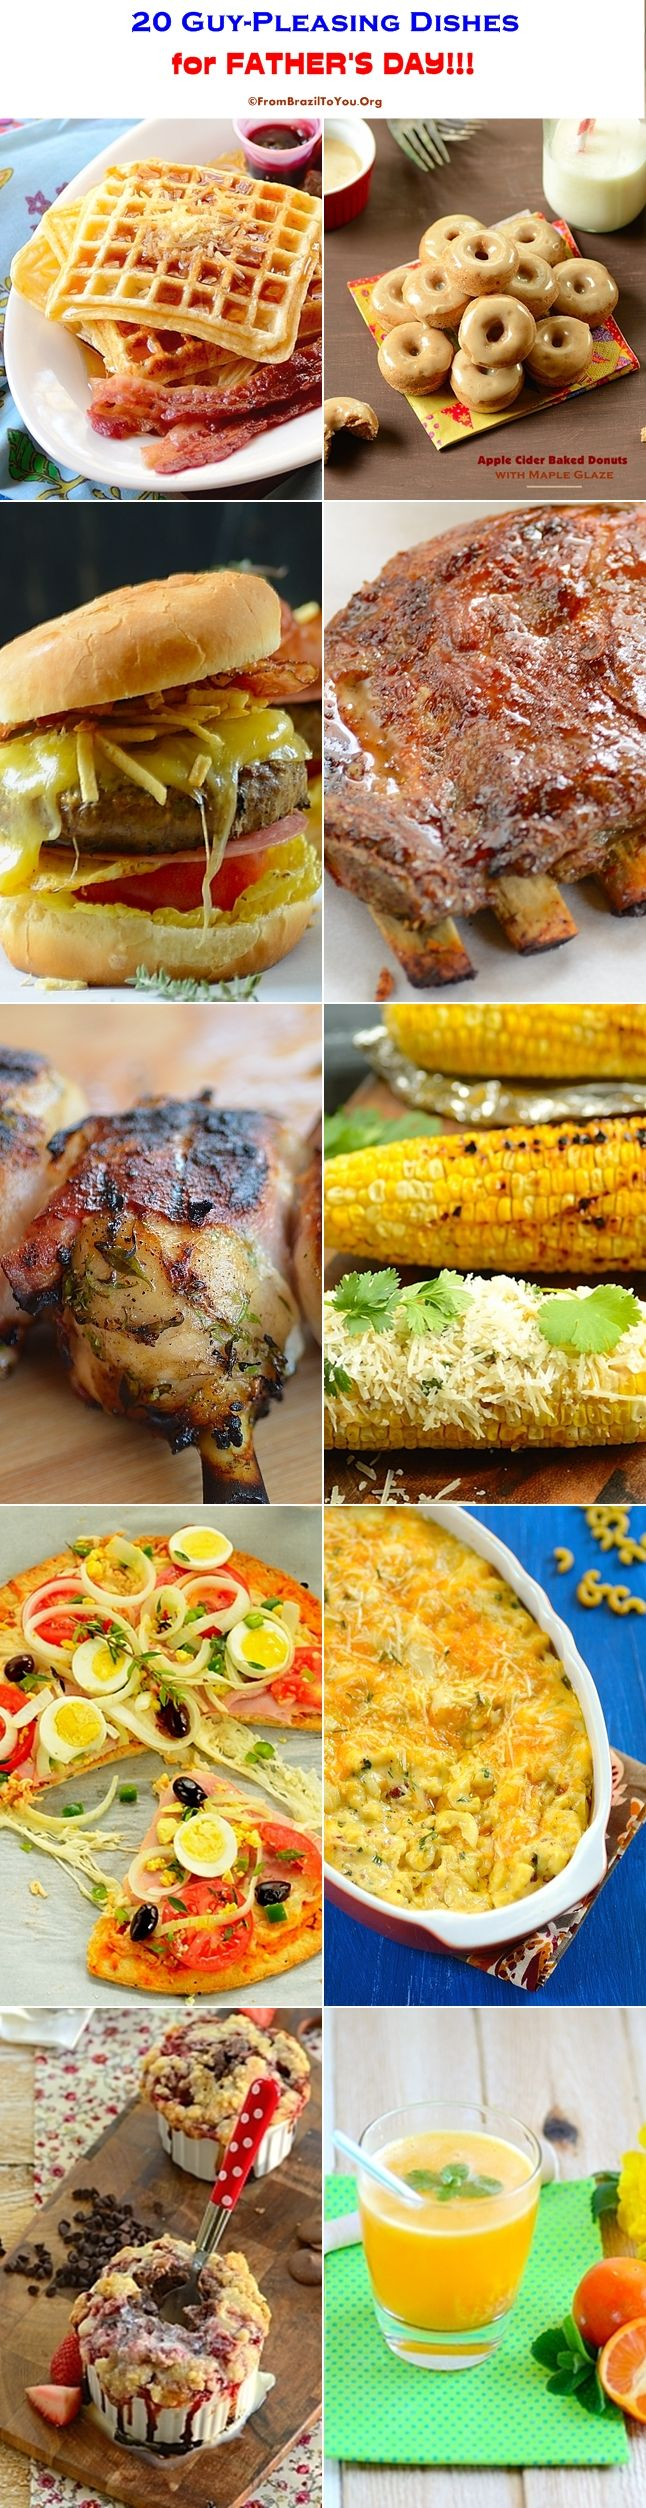 20 GUY-PLEASING DISHES FOR FATHER'S DAY!!! All that a man could crave!!! #dishes #recipes #father'sday